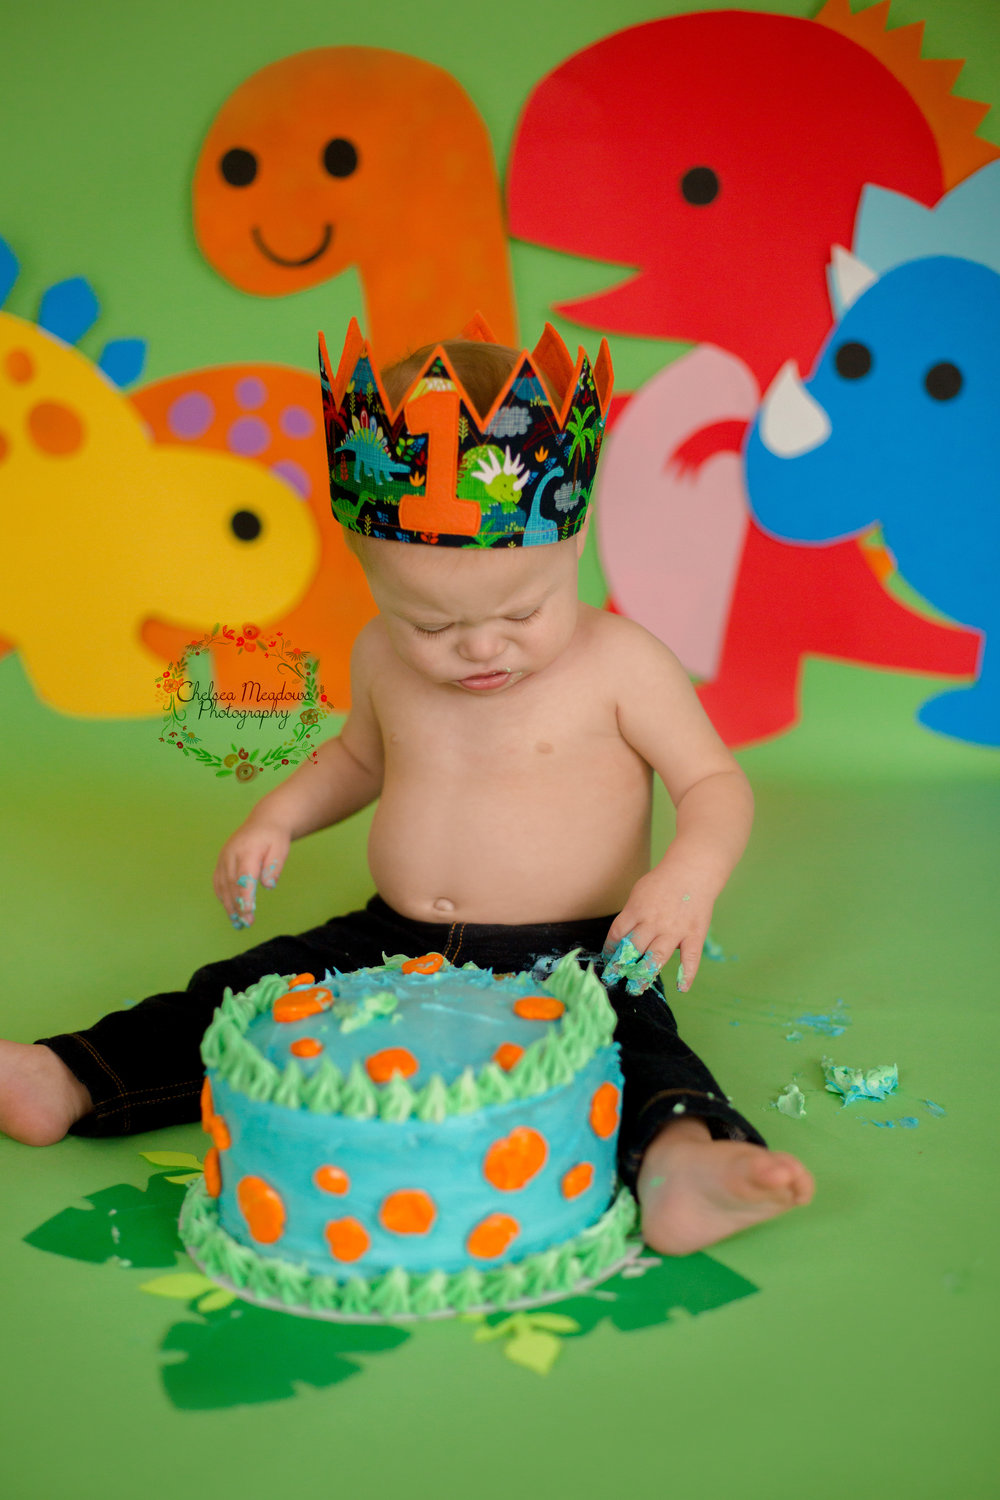 Owen First Birthday - Nashville Family Photographer - Chelsea Meadows Photography (106).jpg